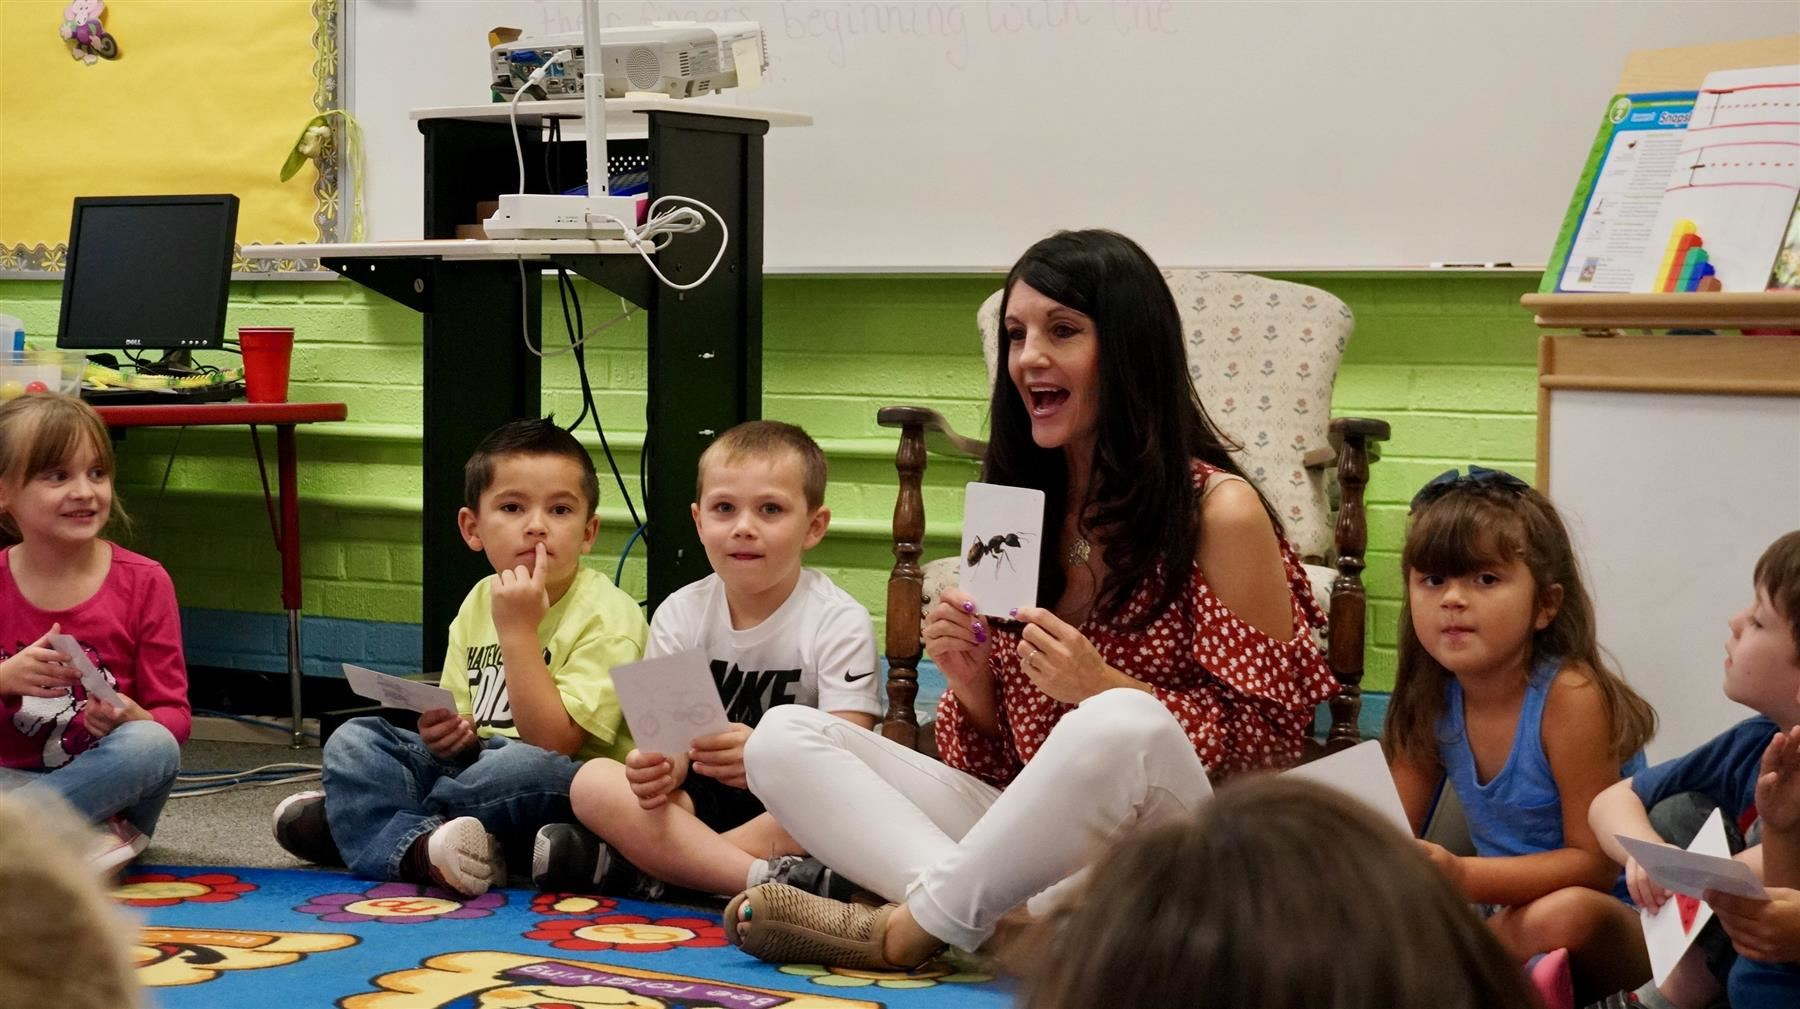 A kindergarten teacher shows with flashcards to her students